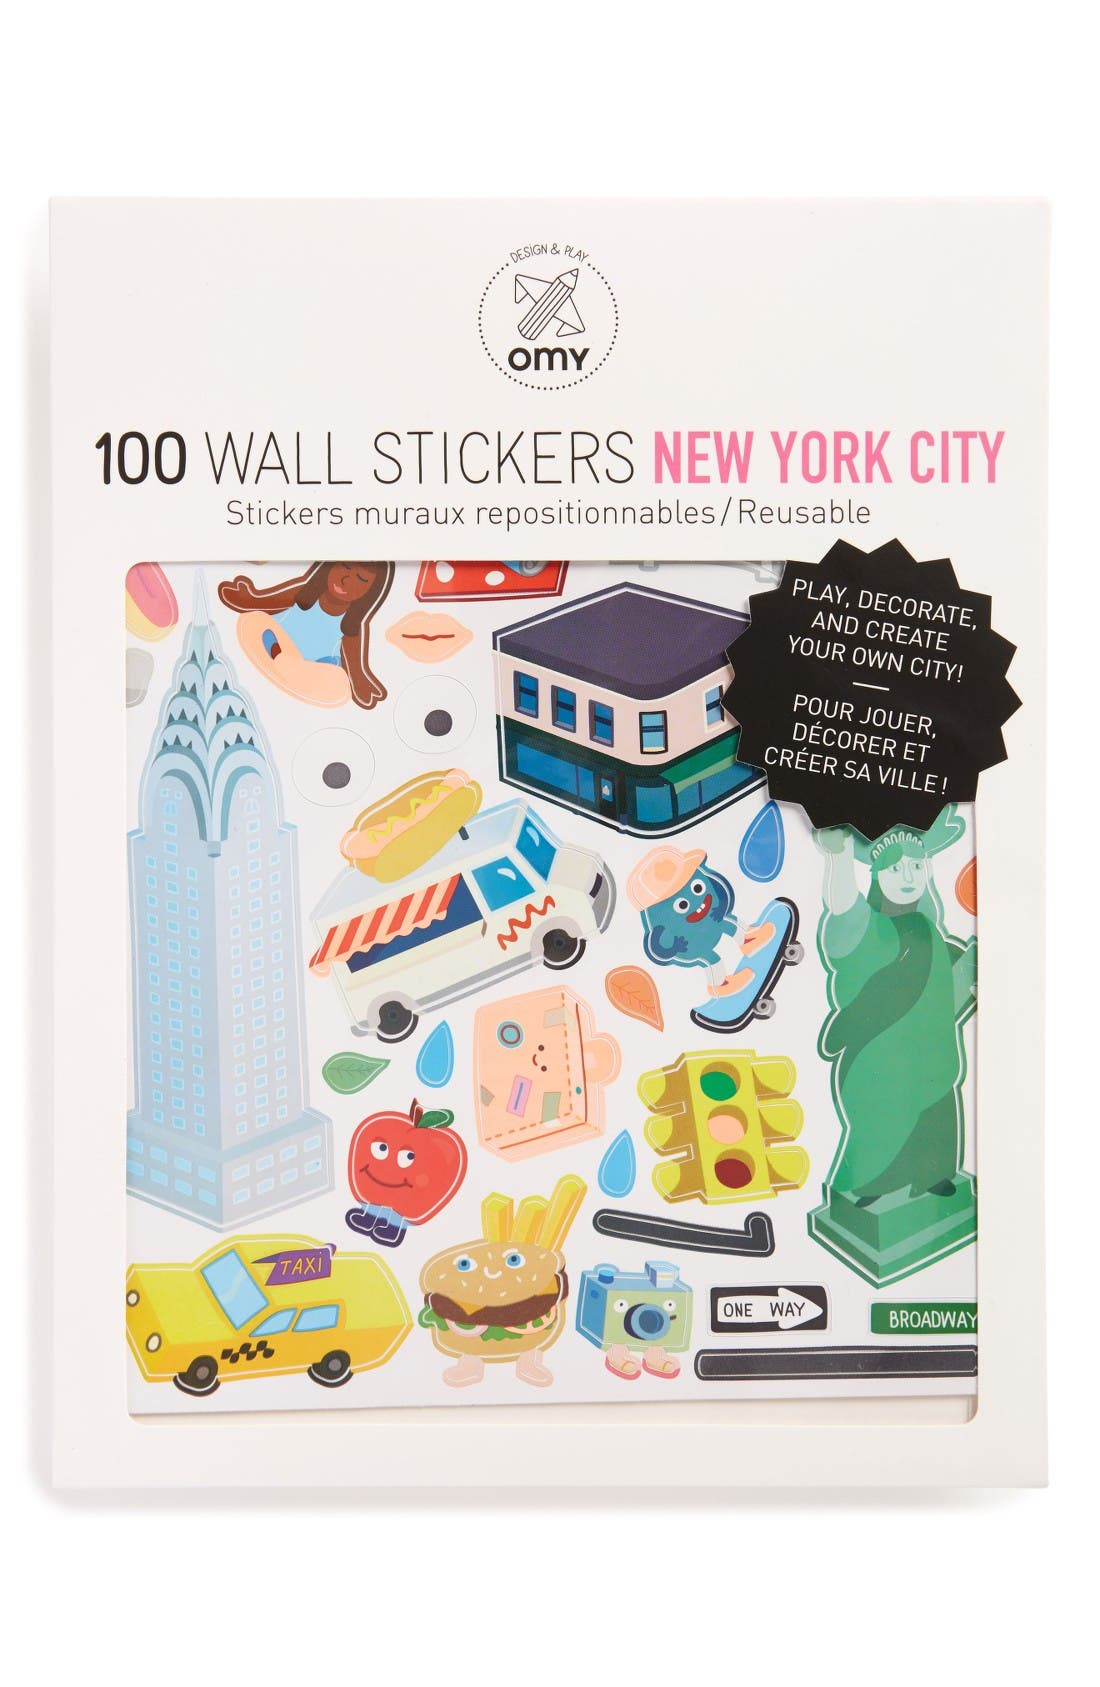 OMY NYC Wall Stickers